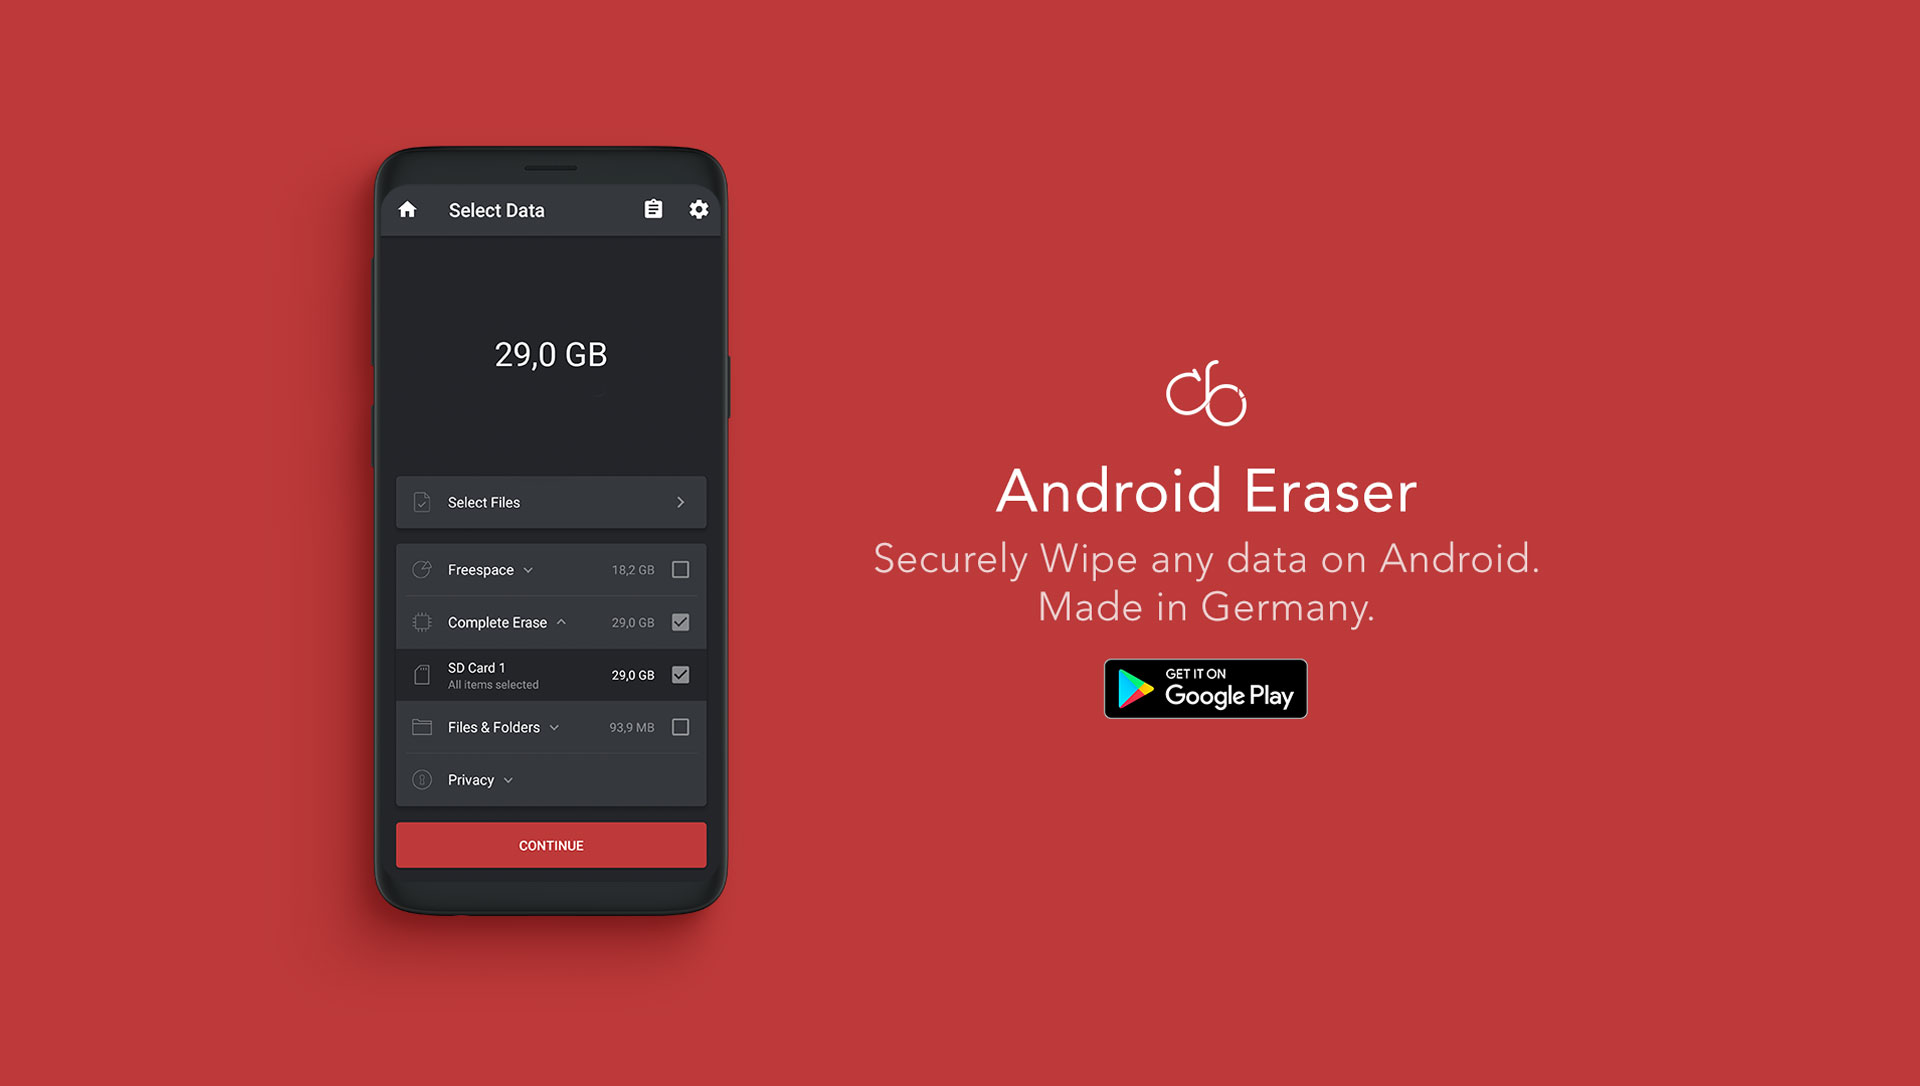 Android Eraser